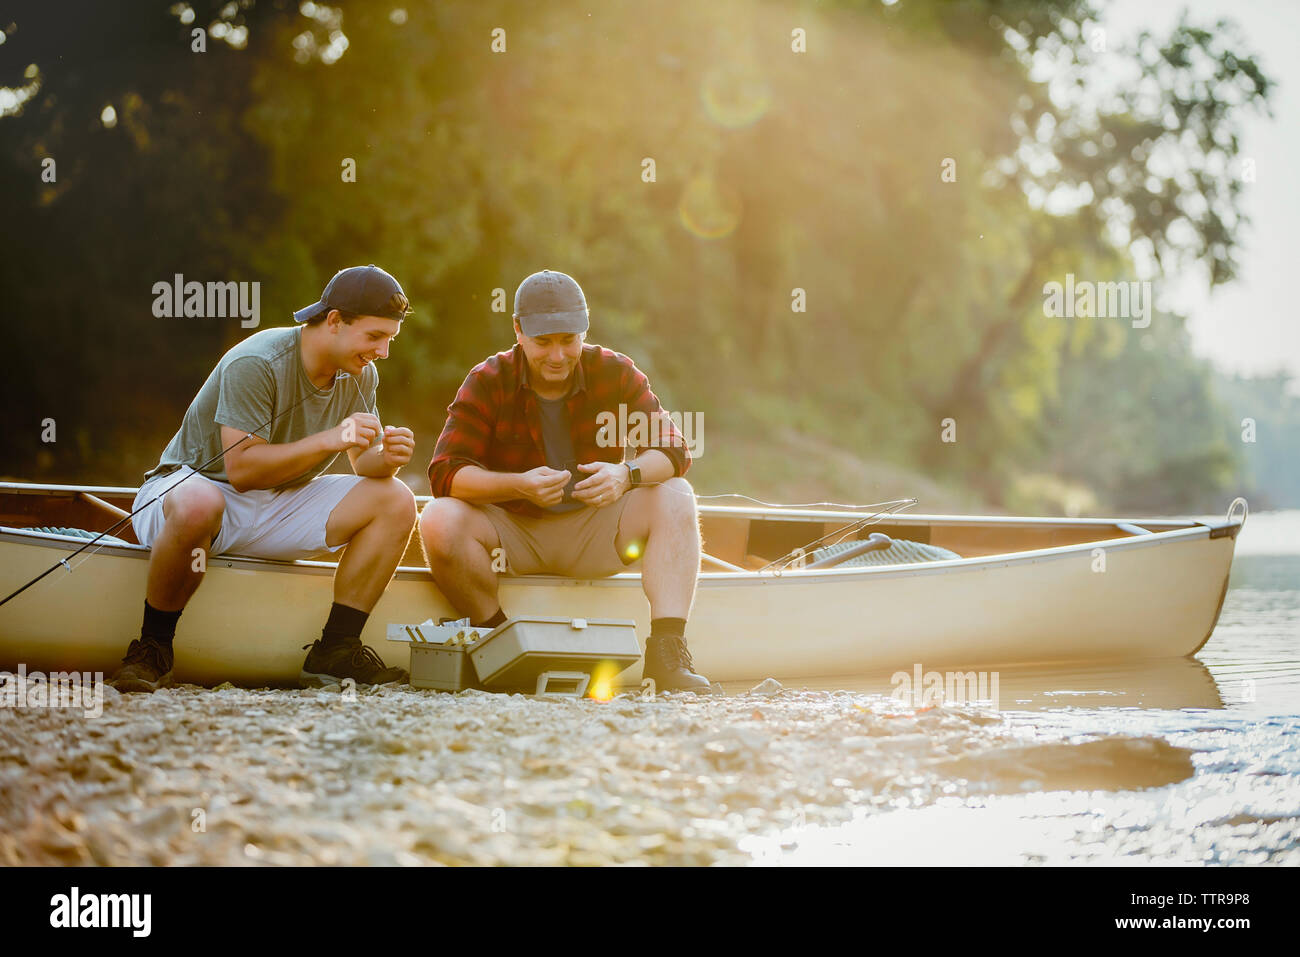 Friends adjusting fishing tackles while sitting on boat by lake - Stock Image